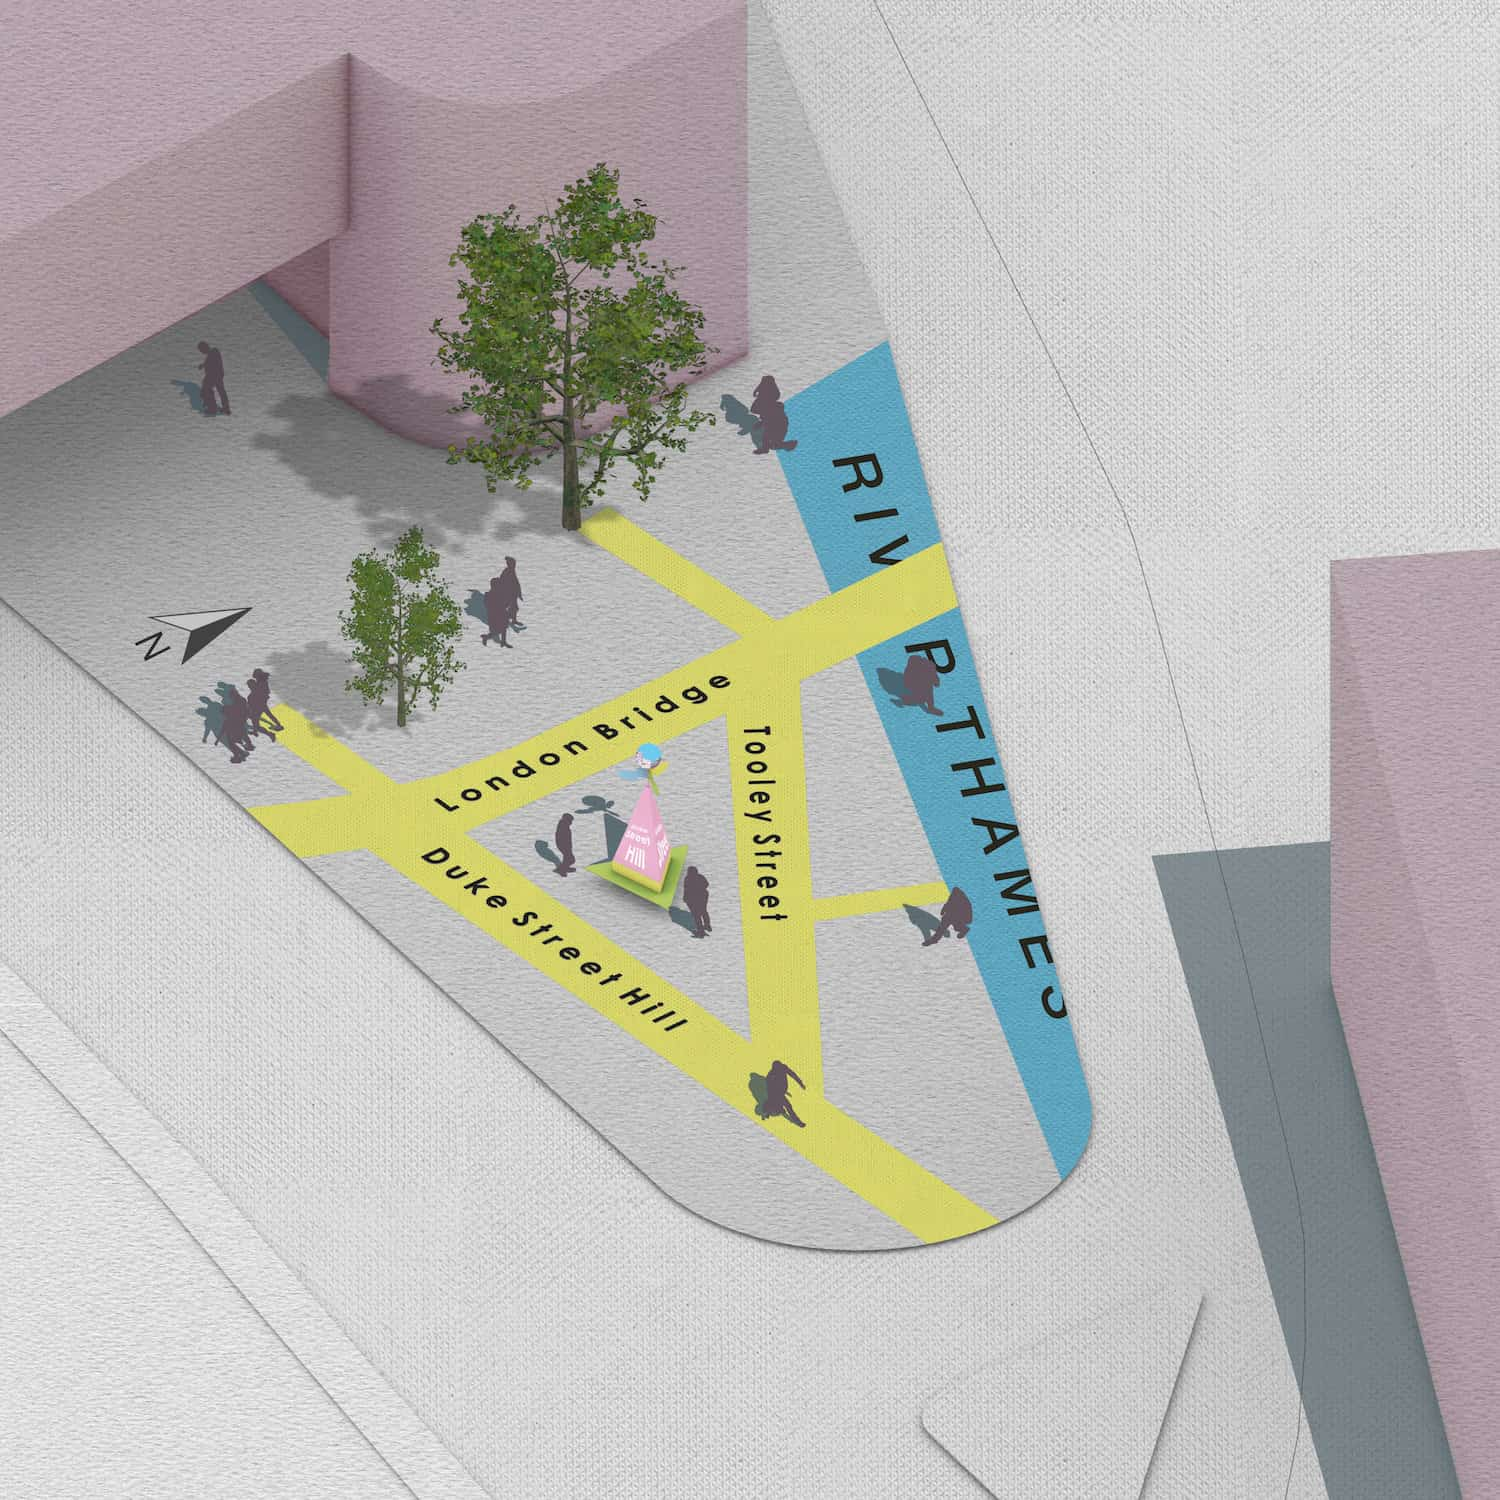 Charles Holland Architects win London Bridge public realm competition